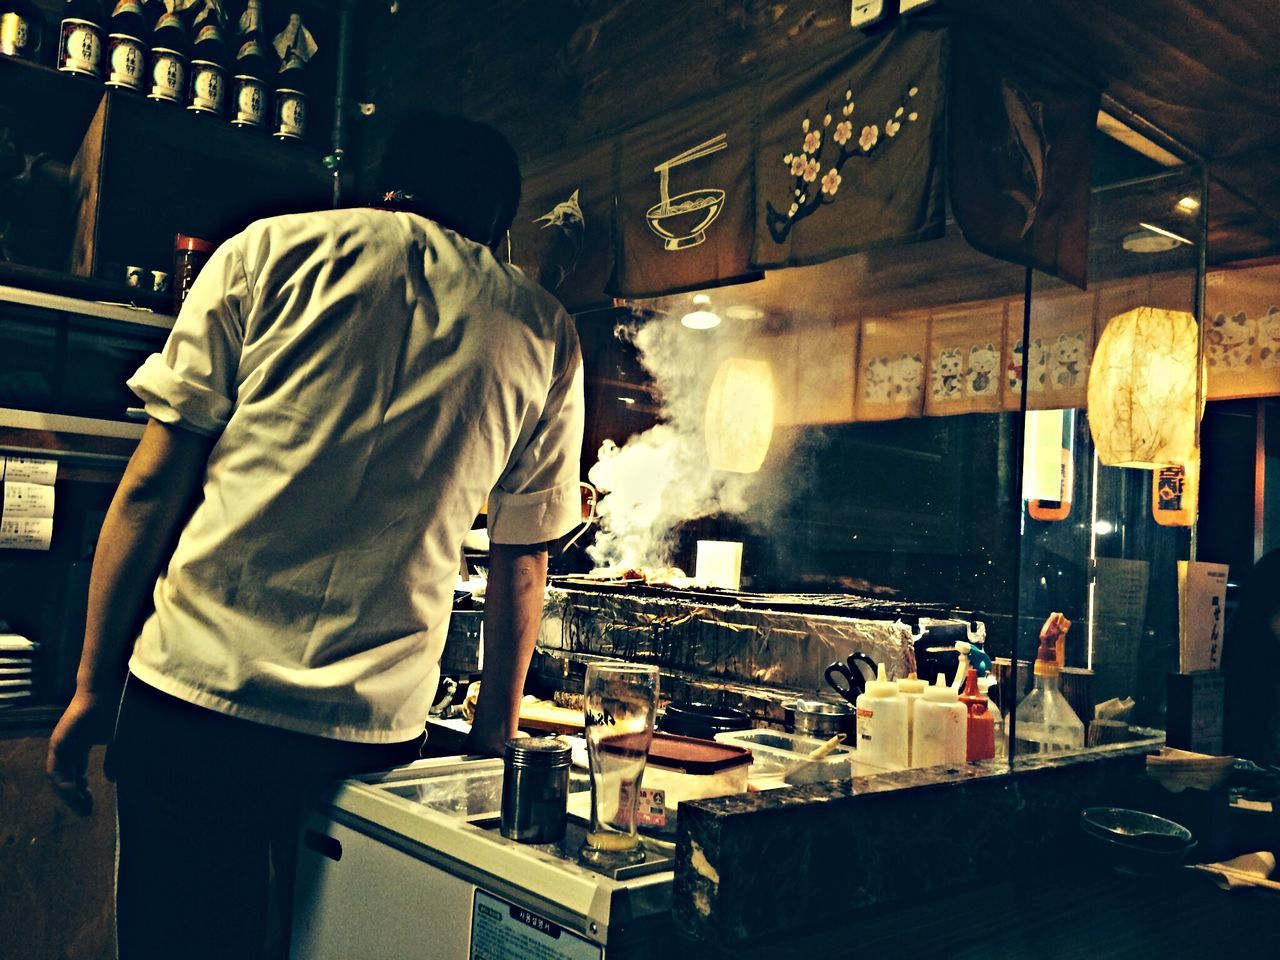 Rear View Of Man Cooking In Kitchen At Restaurant